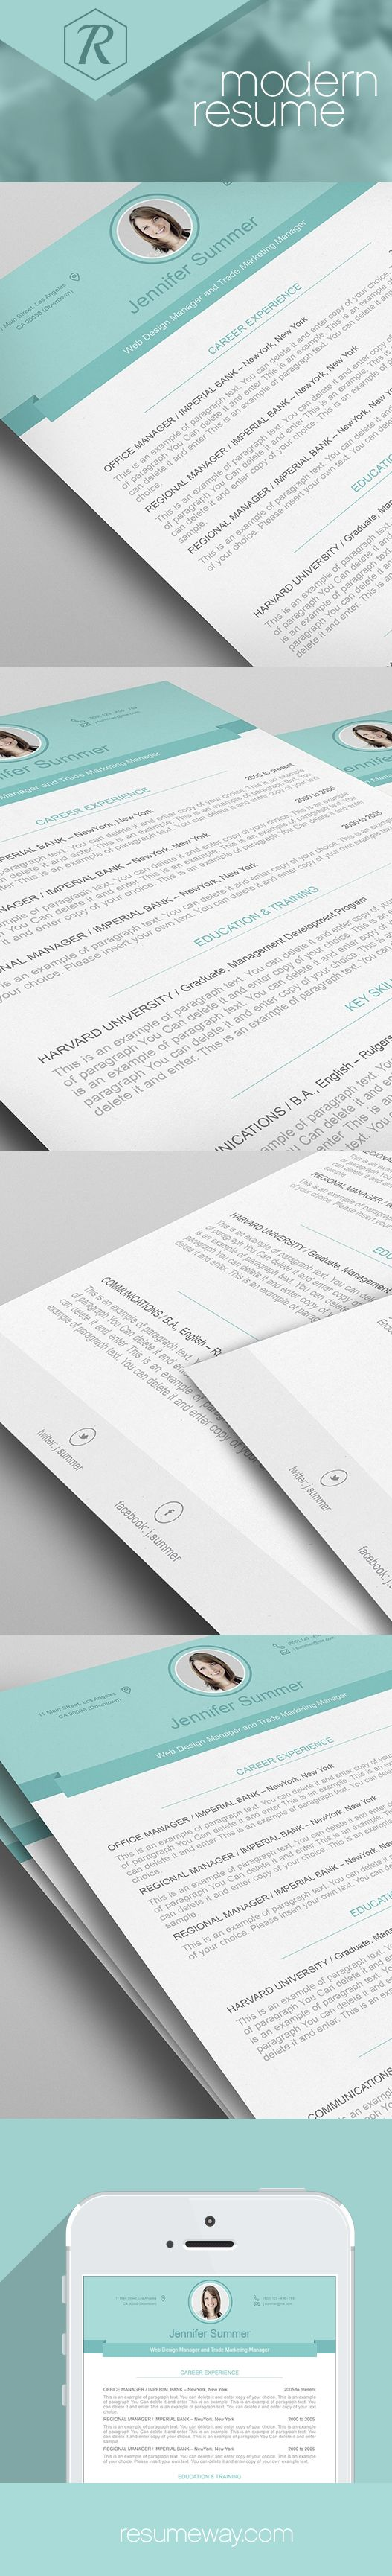 Modern Resume Template | Premium Line Of Resume U0026 Cover Letter Templates.  Edit With Microsoft